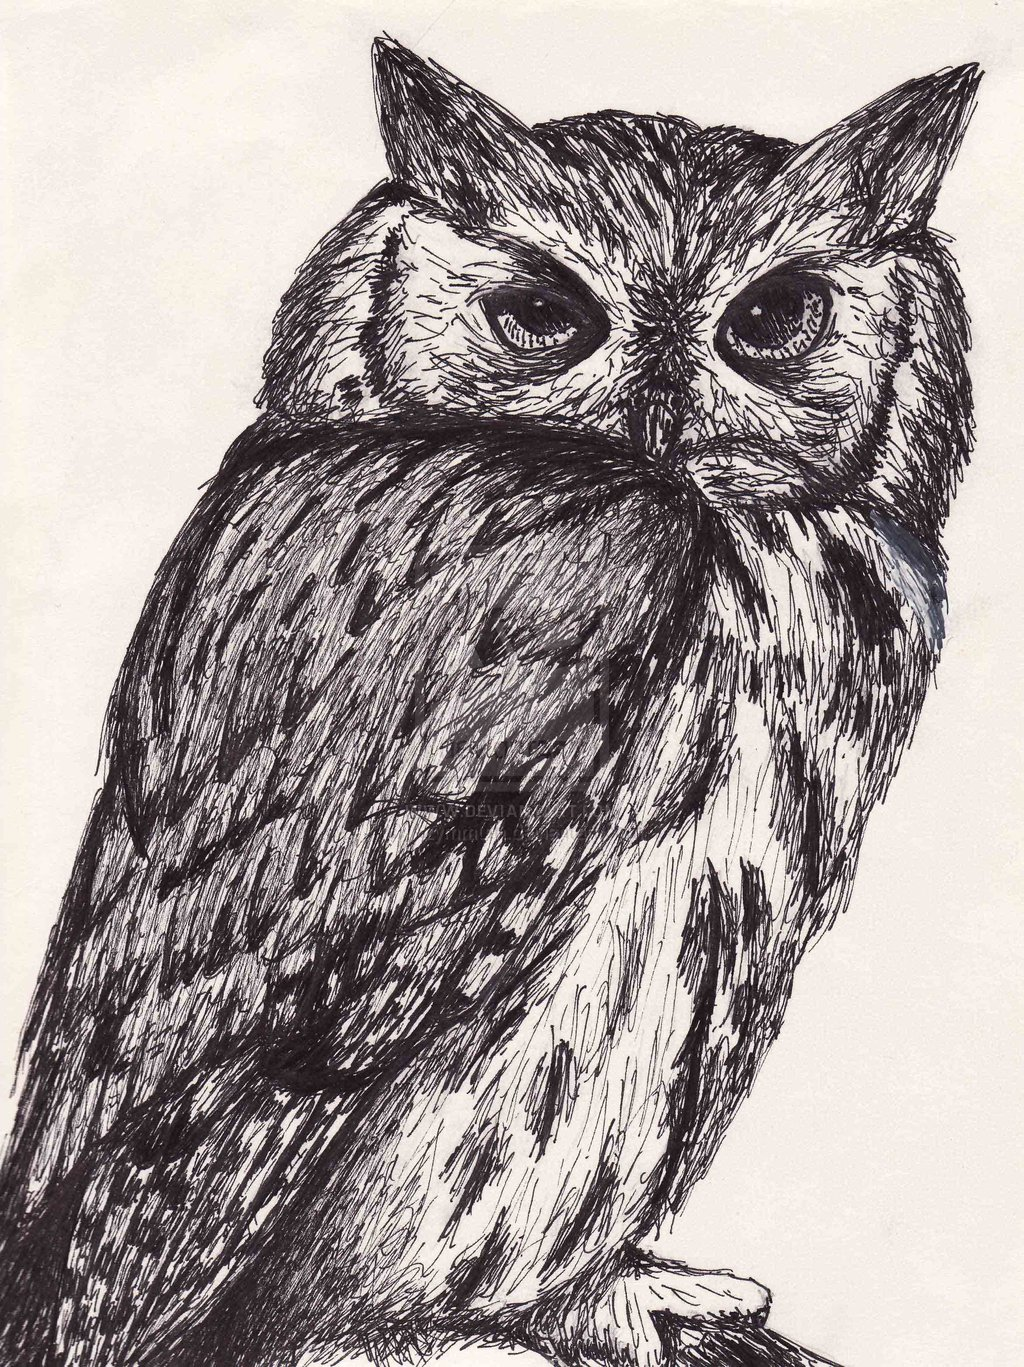 1024x1367 Animal Ink Drawings Pen And Ink Drawings Of Animals Pen And Ink